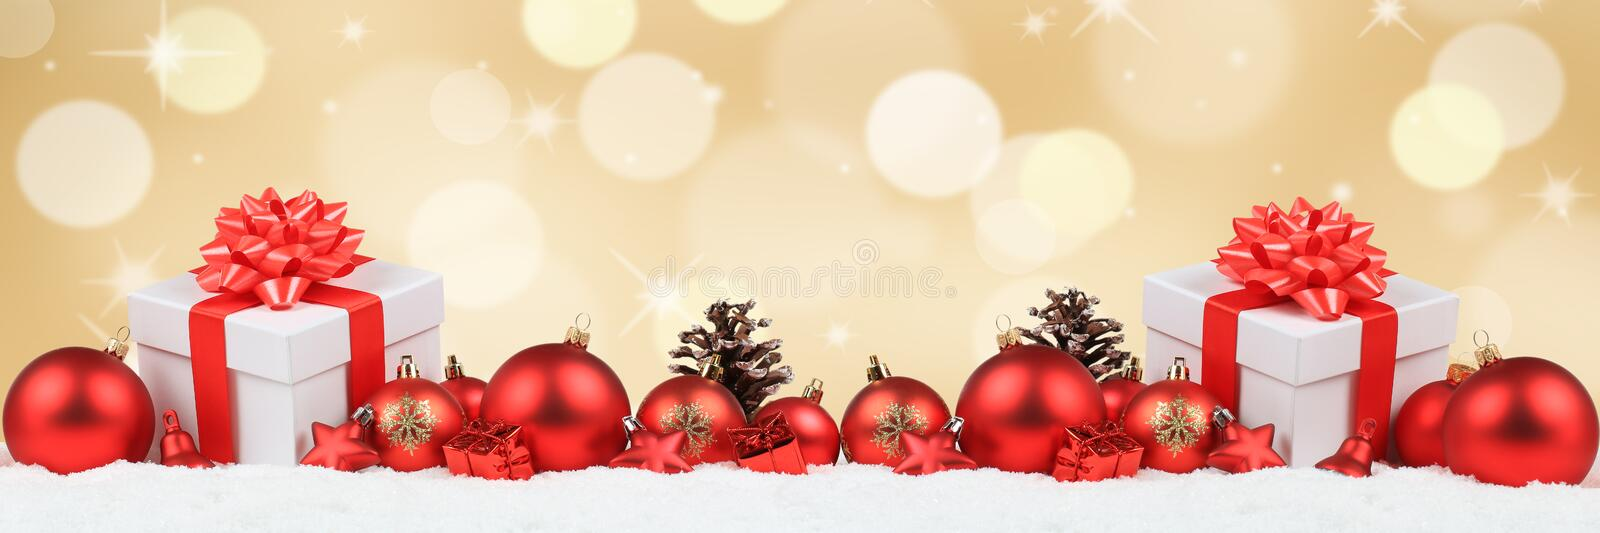 Christmas gifts presents balls banner decoration golden background copyspace stock photography